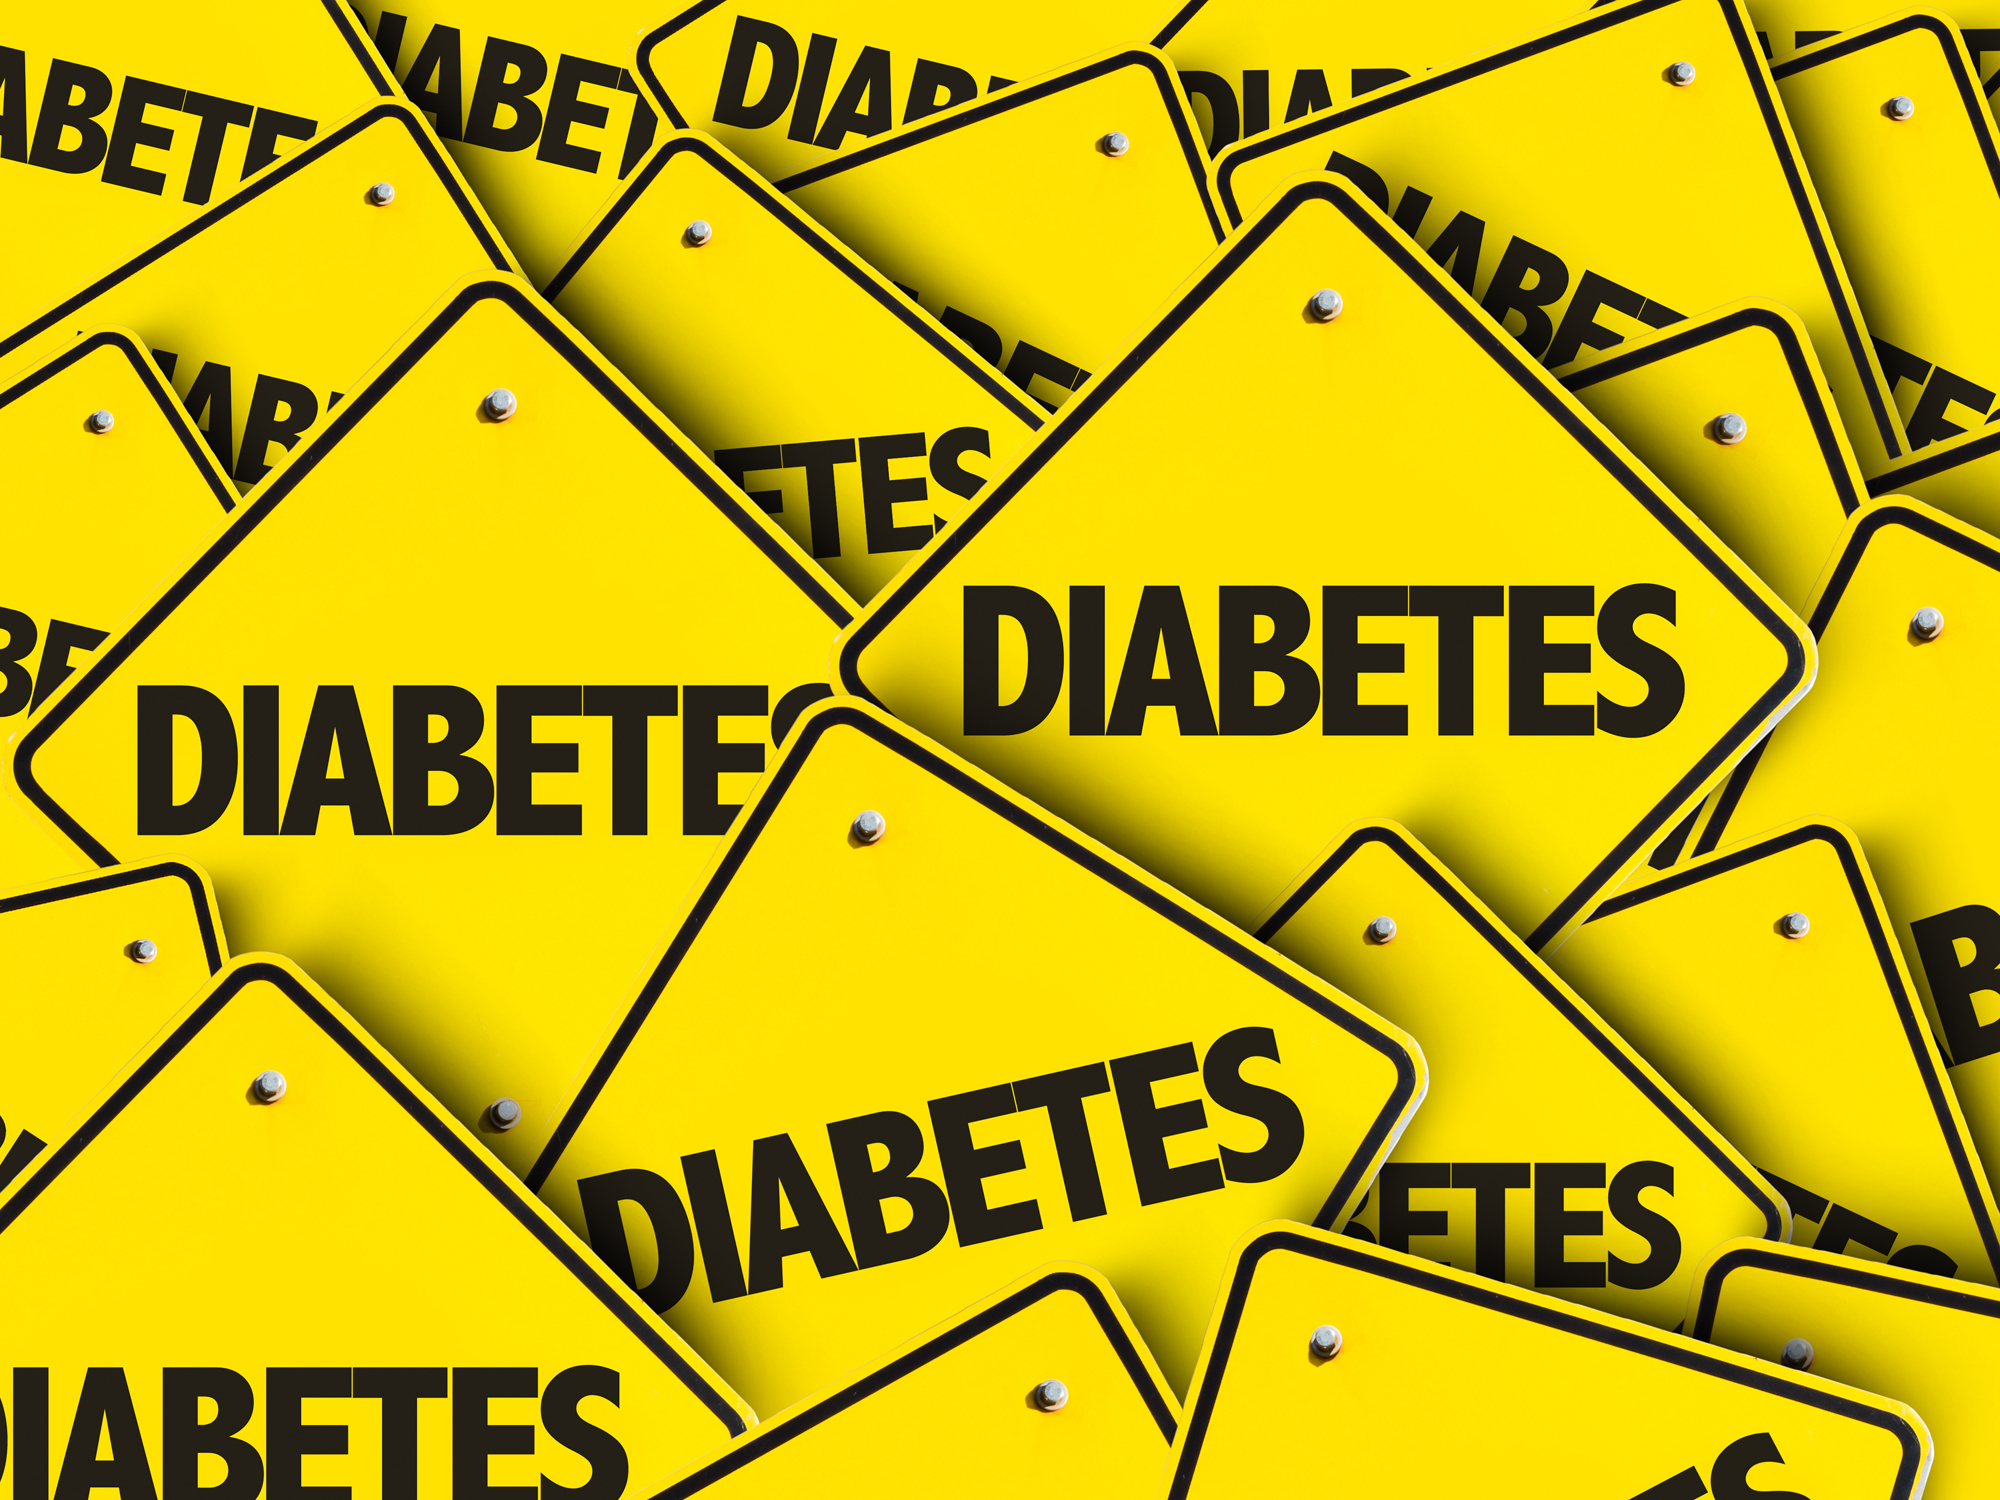 How to protect yourself from diabetes-causing air pollution